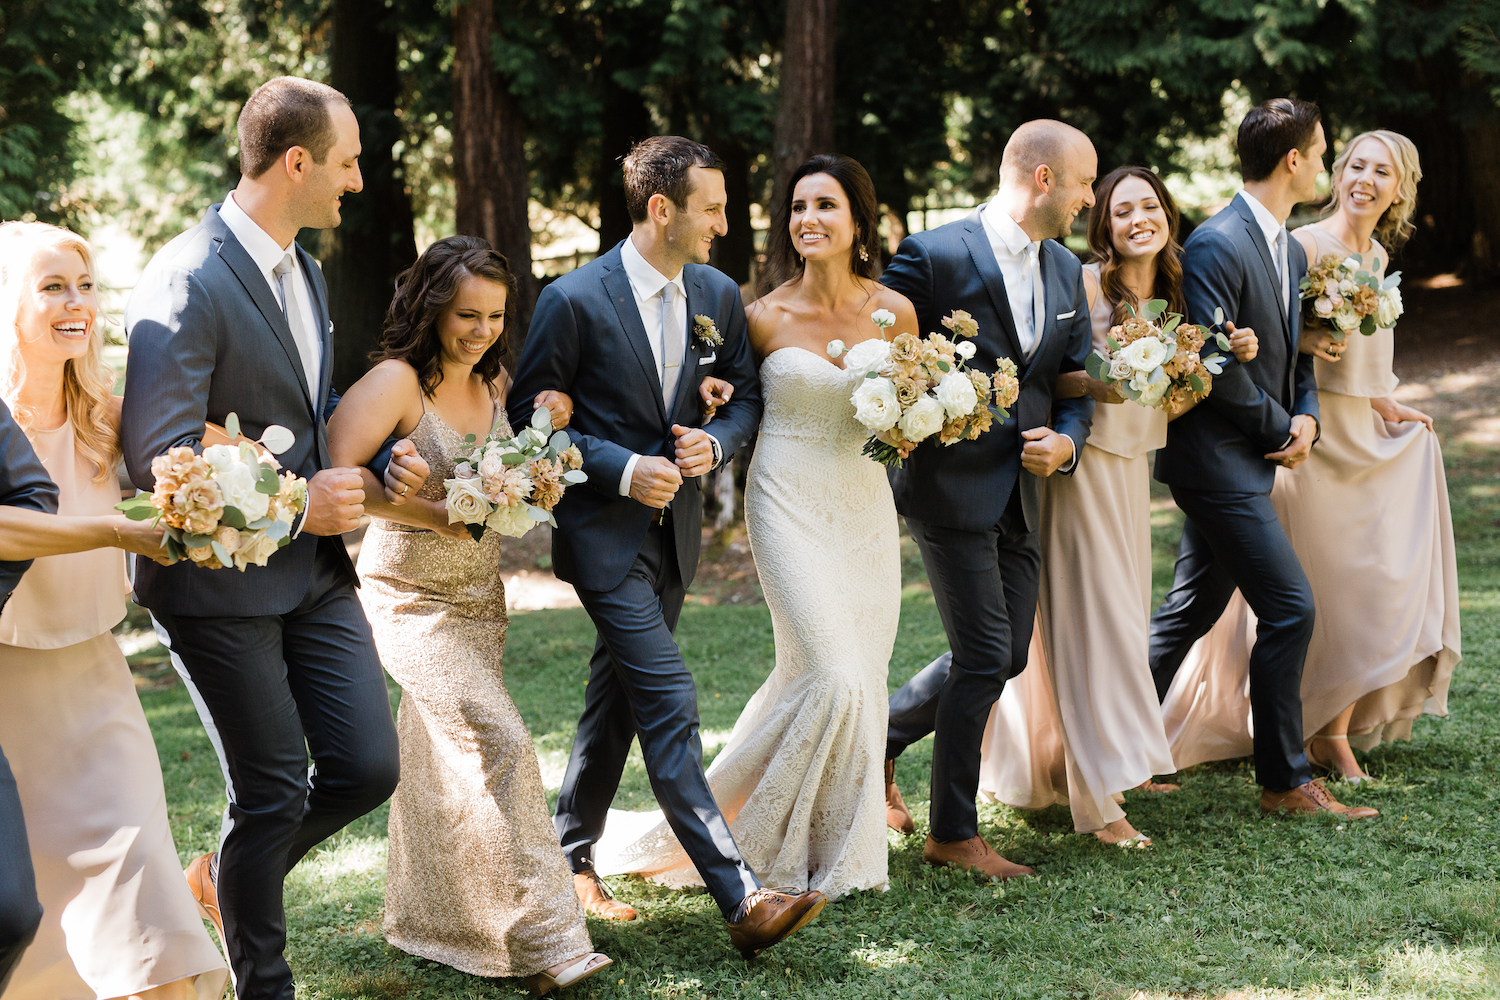 Wild Bloom Floral - Rachel Birkhofer Photography - Jessica and Phil - Real Wedding - Seattle 1.jpeg